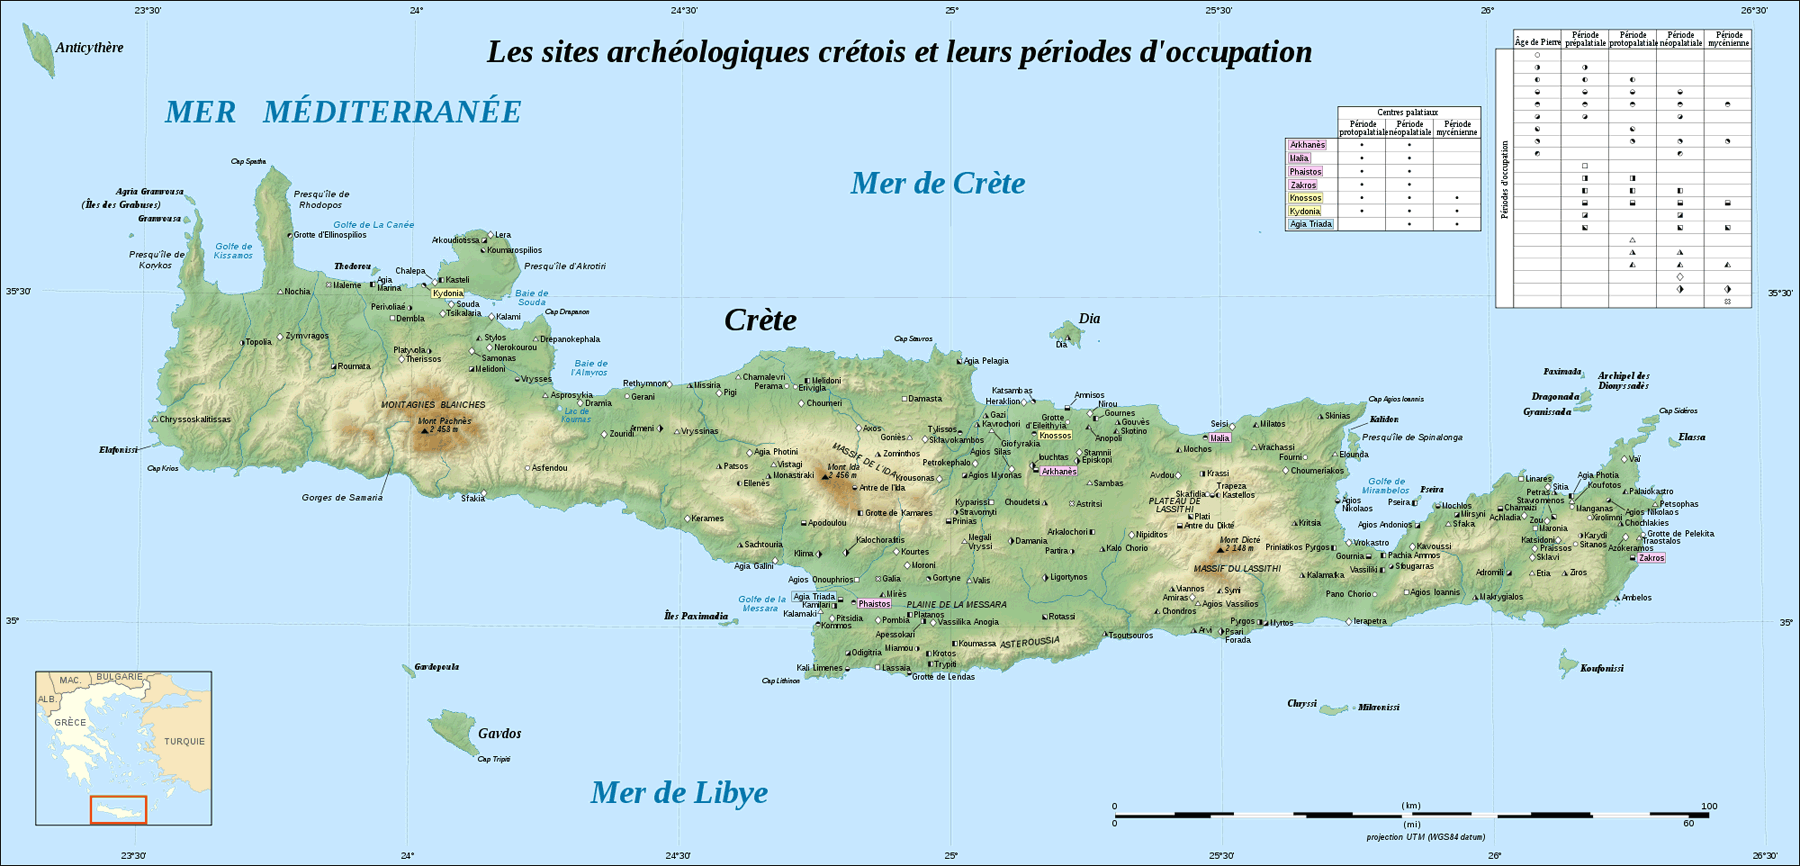 Crete Archaeological Sites Fr large map